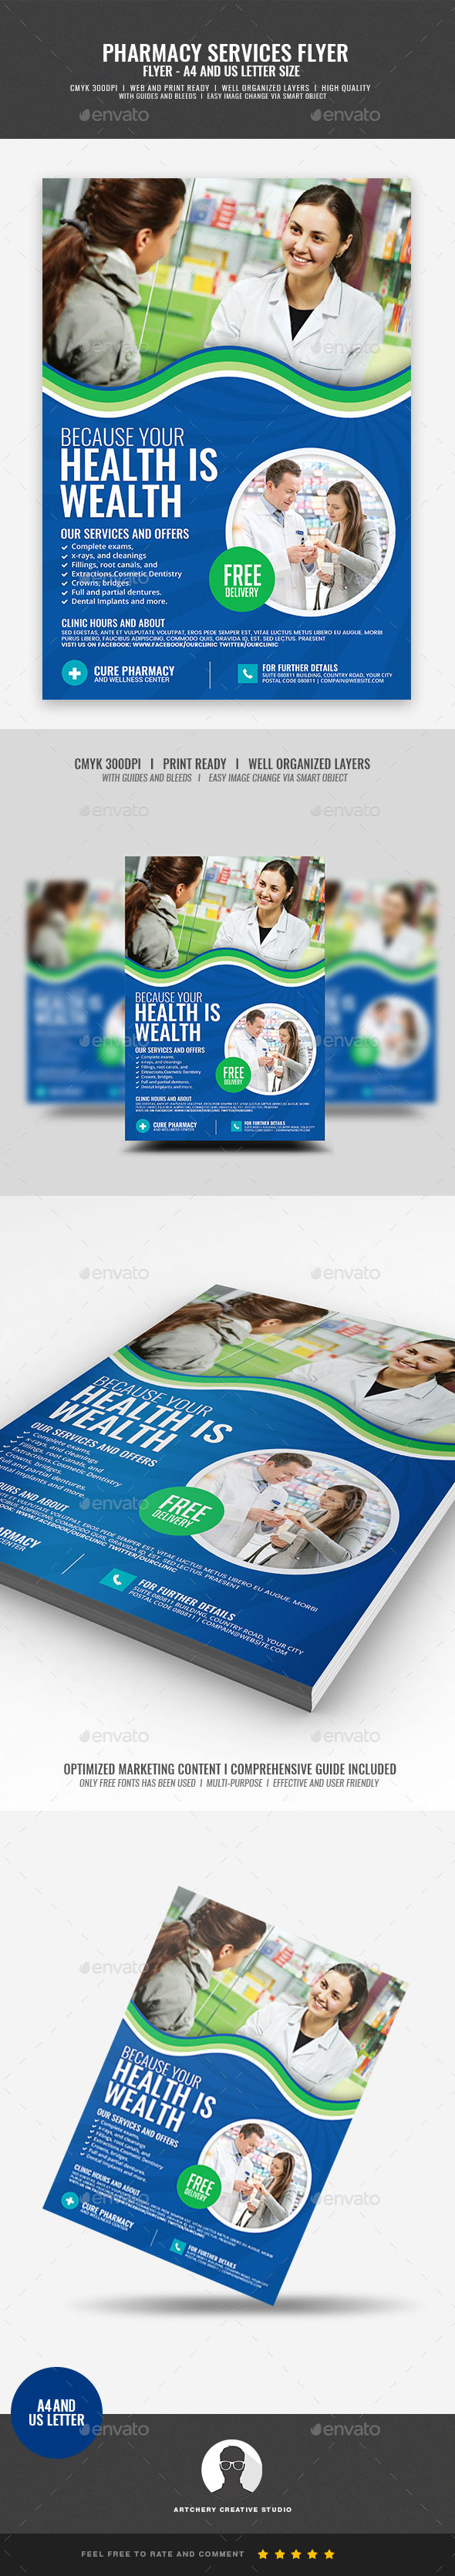 GraphicRiver Pharmaceutical Services Flyer 20948090